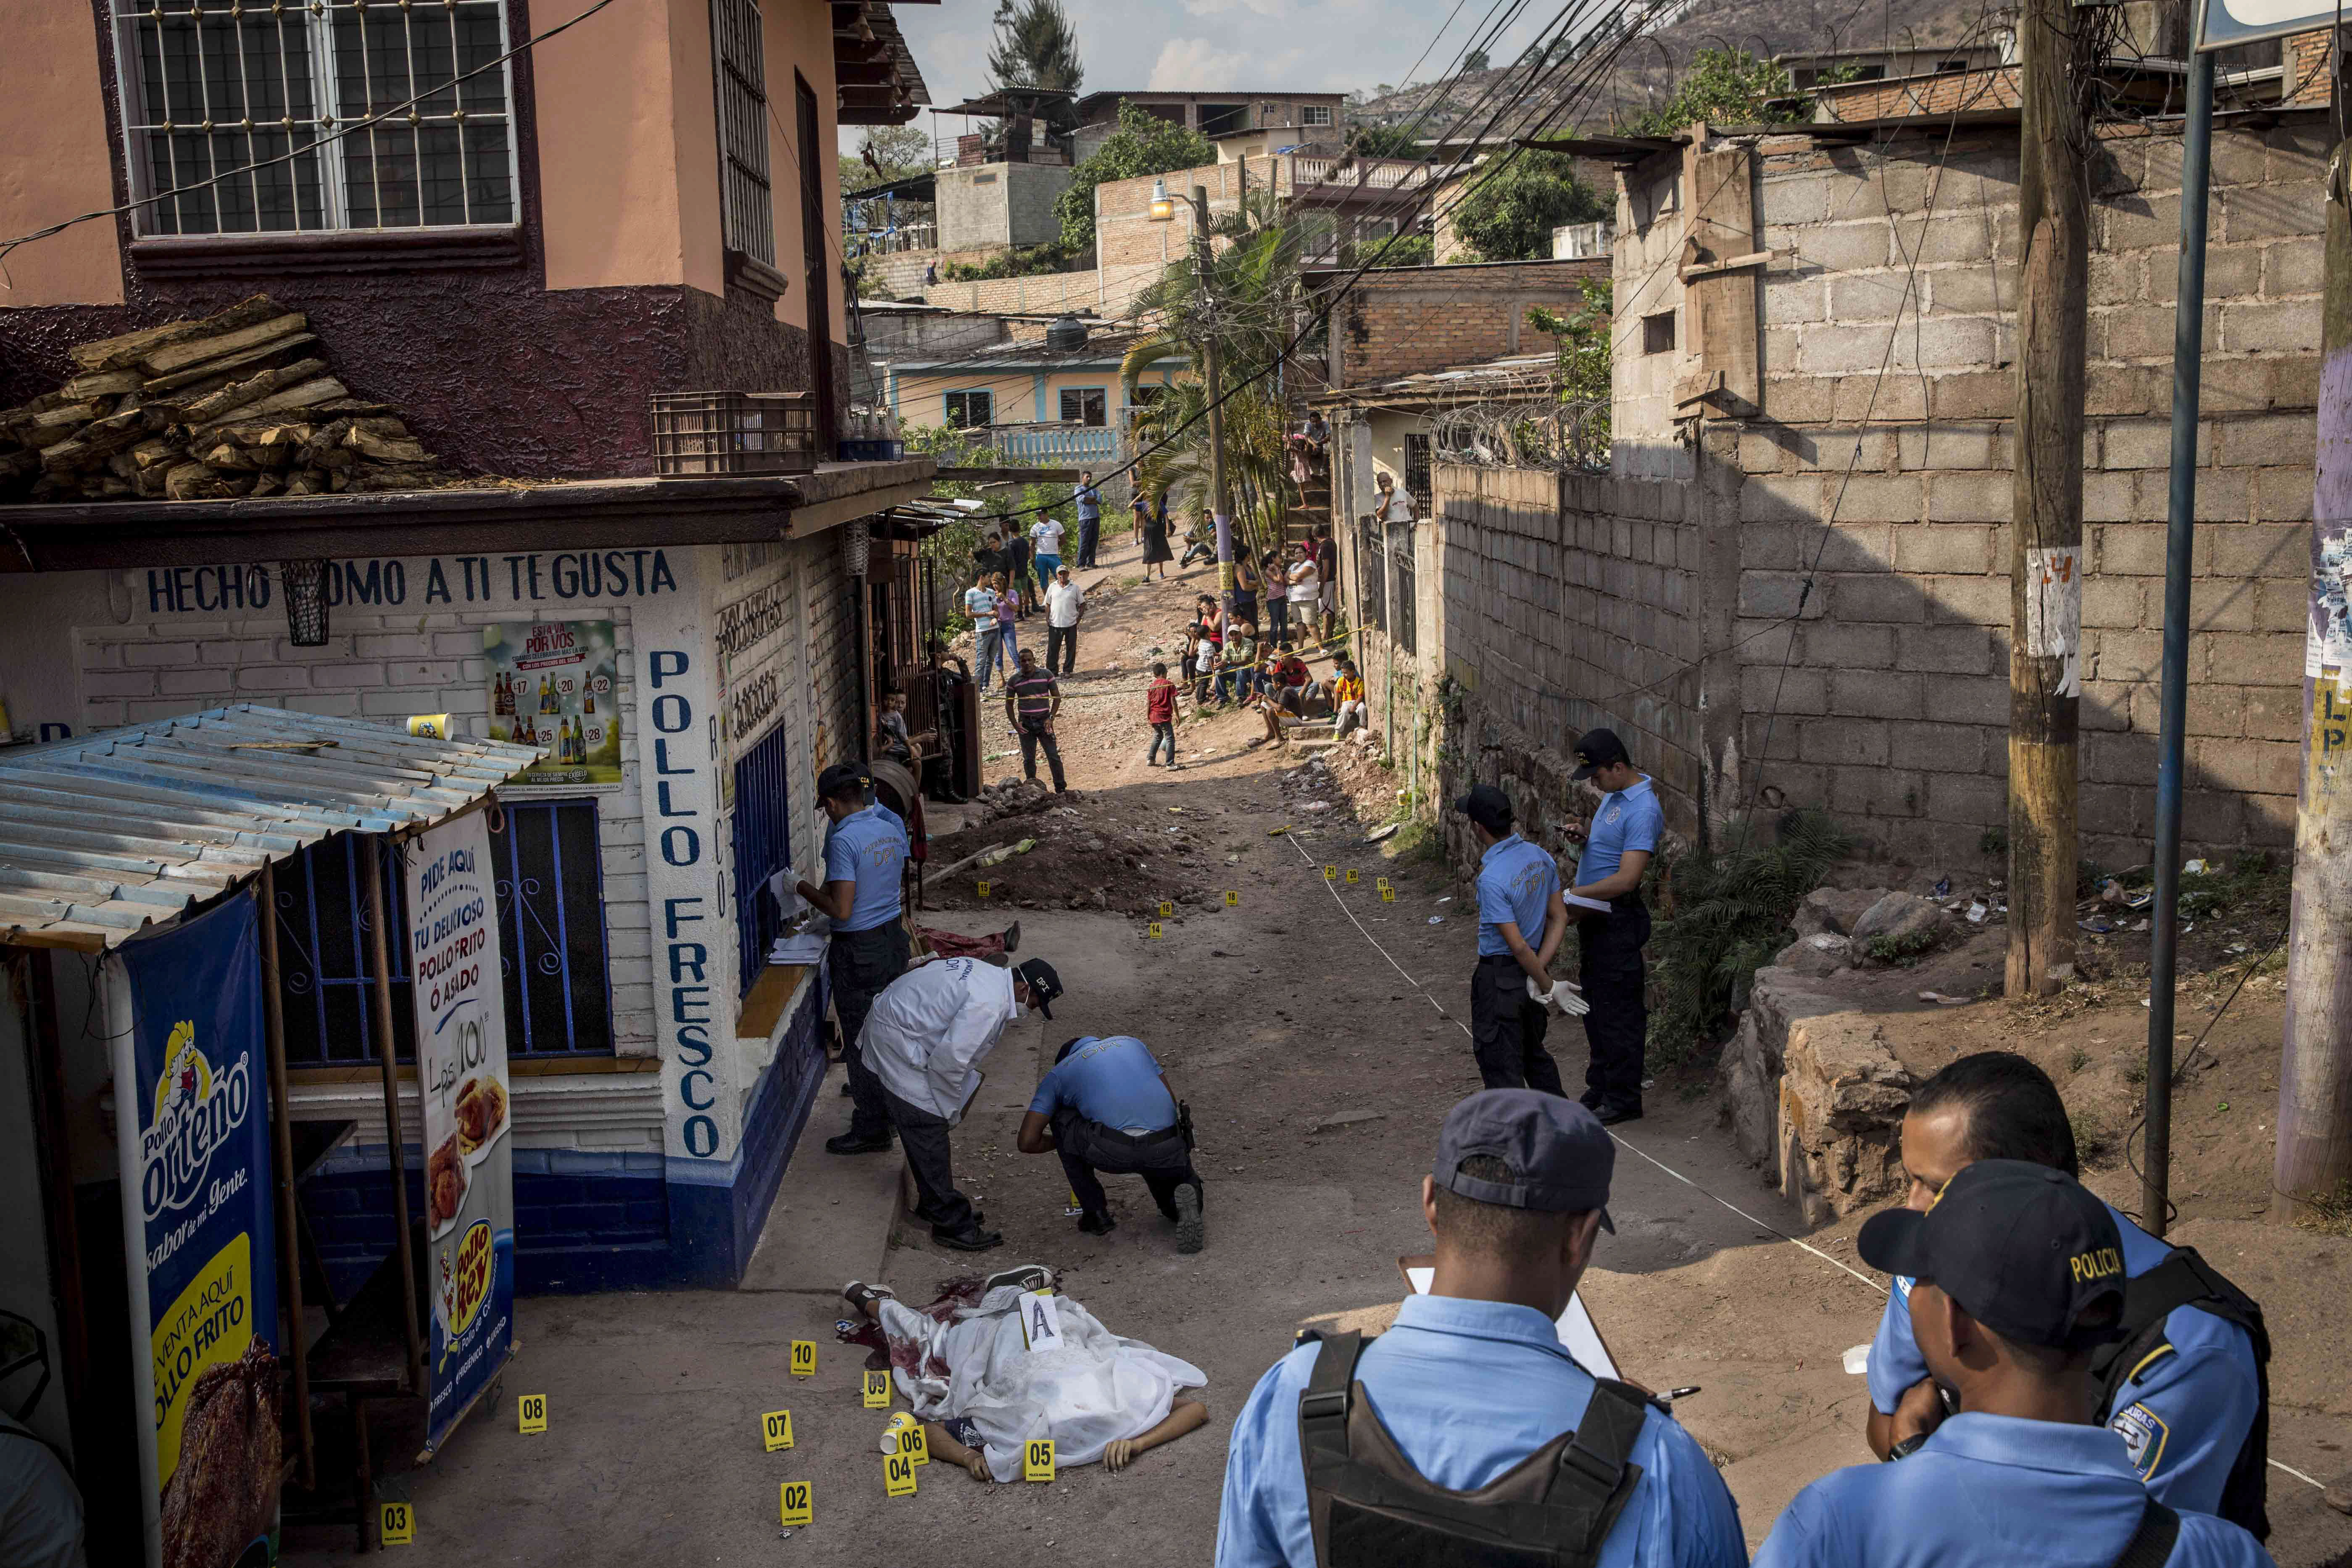 <p>The crime scene of the murder of two brothers, Carlos Amador 22, and Edwin Amador, 20, shot in cold blood during broad daylight in the streets of the Suyapa neighbourhood in Teguciaglpa, the capital of Honduras. (Photo: Francesca Volpi) </p>